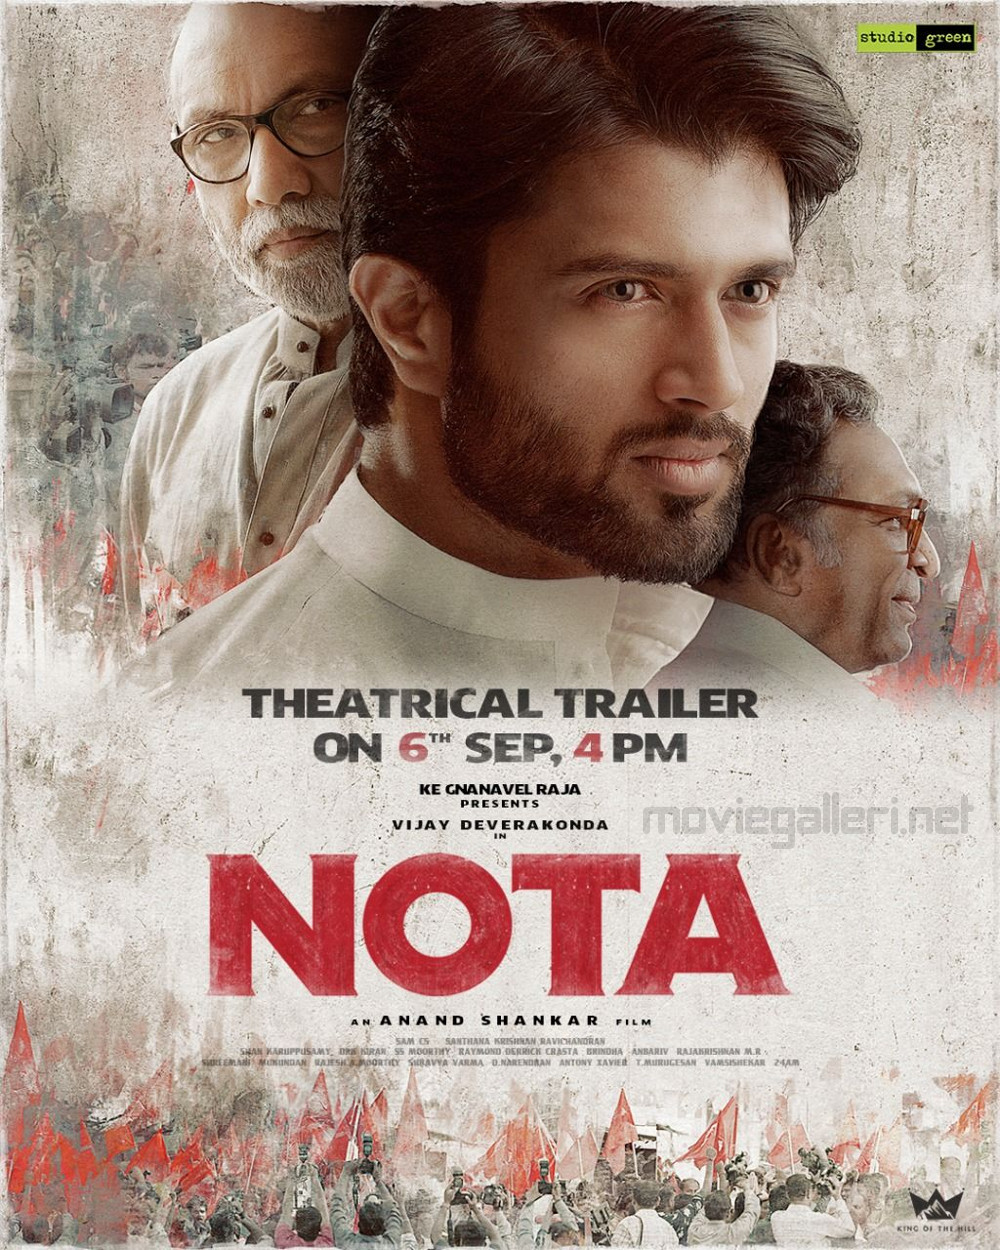 Sathyaraj Vijay Devarakonda Nassar Nota Movie Trailer Release on Sep 6th Poster